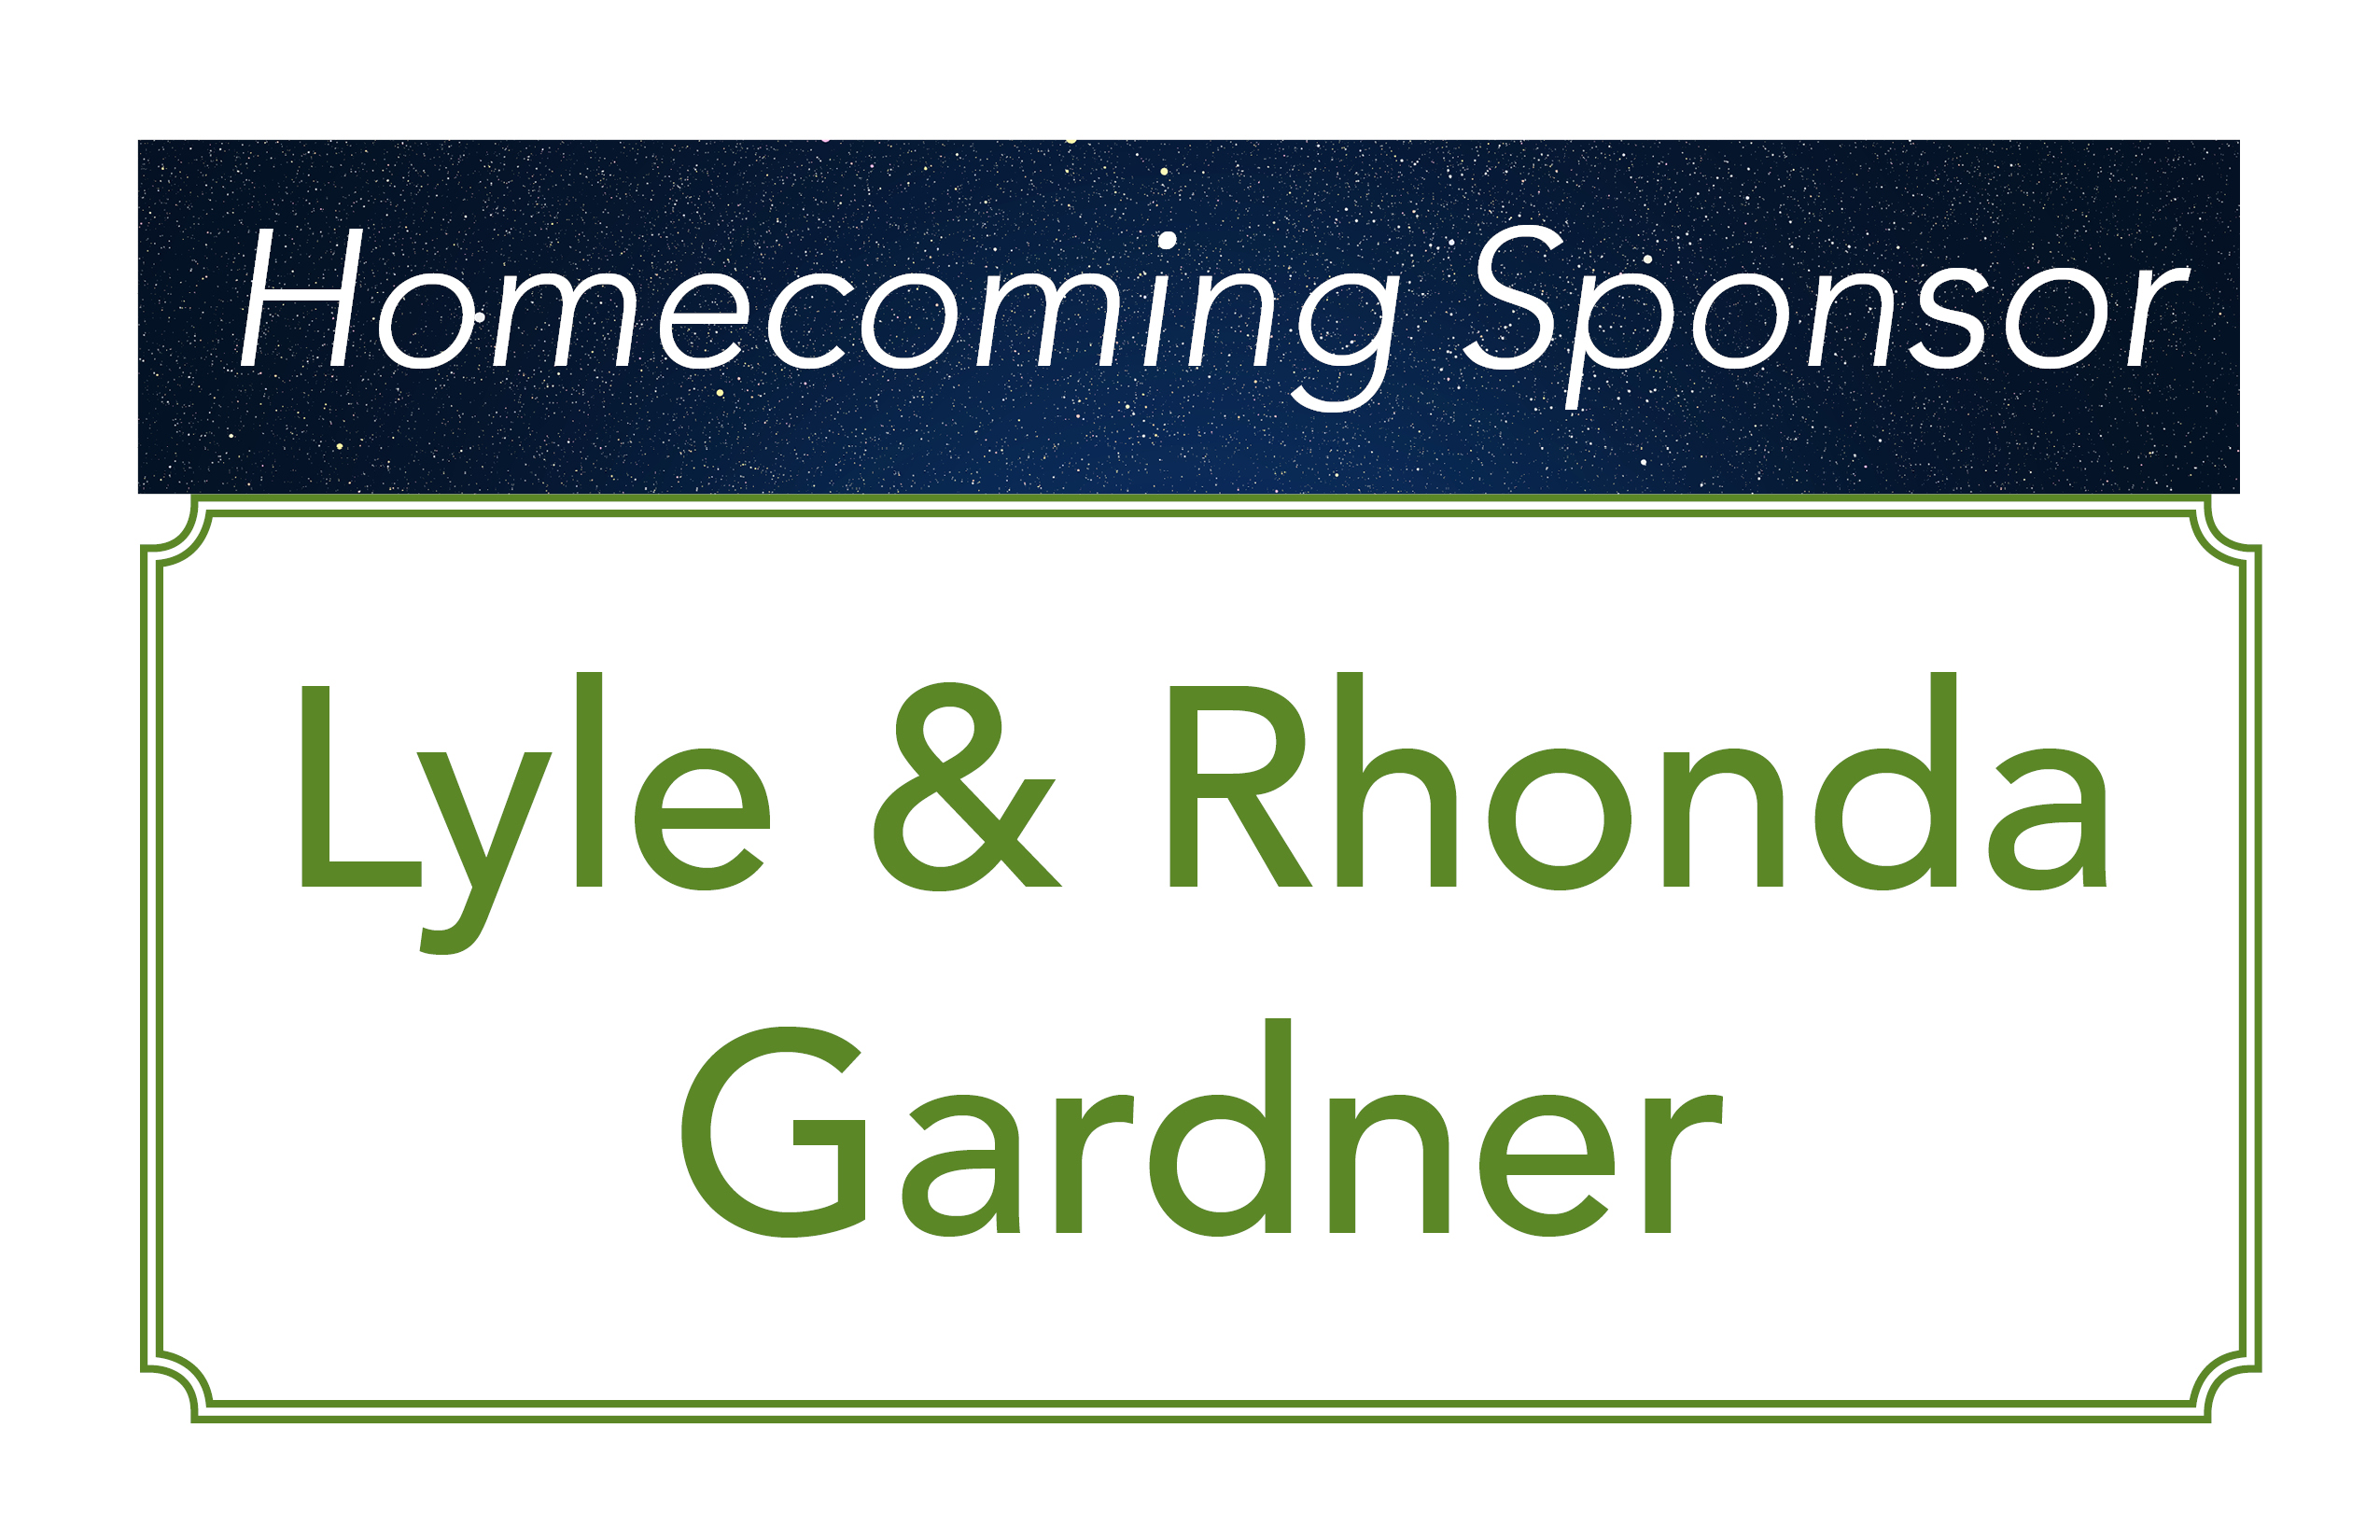 Lyle & Rhonda Gardner, Homecoming Sponsor